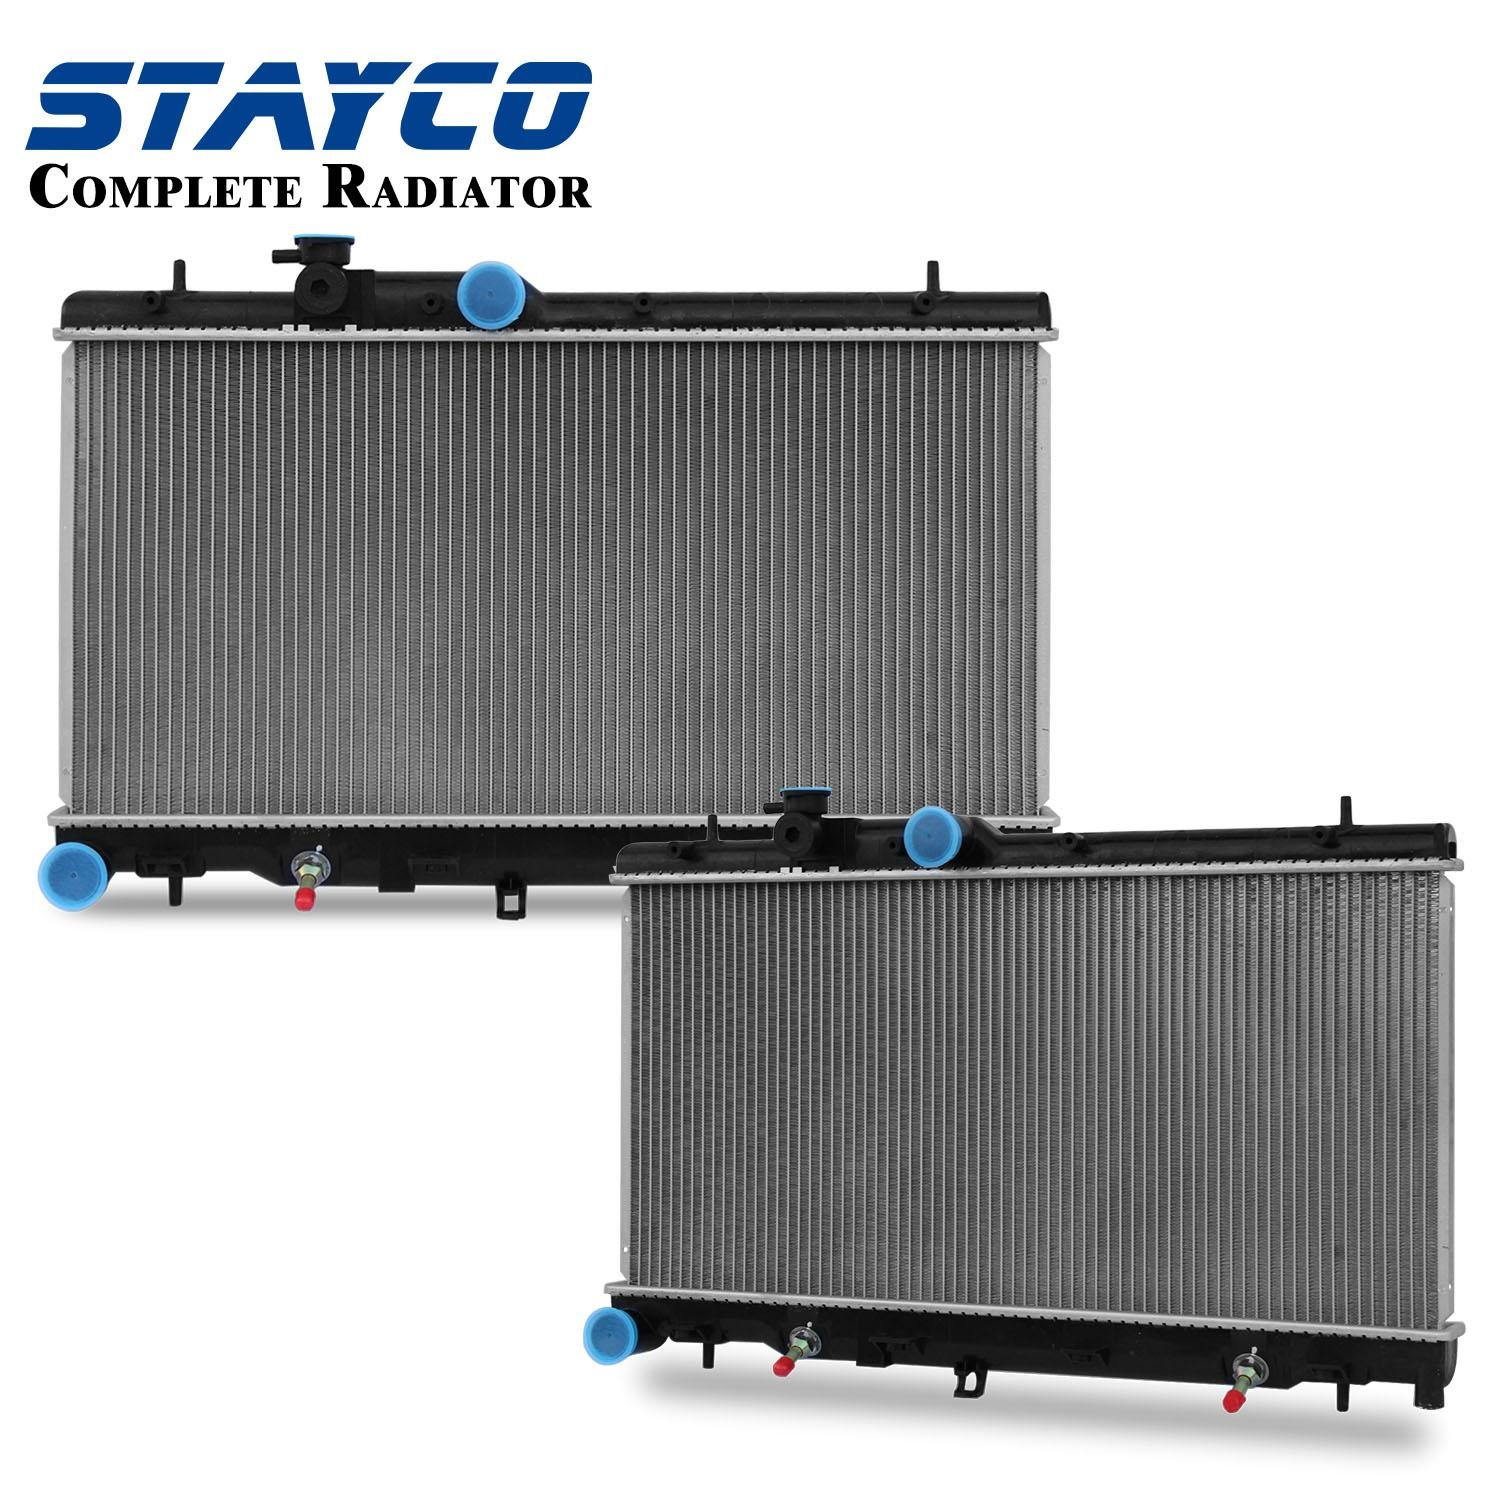 Radiator For 2000 2001 2002 2003 2004 Subaru Legacy Thermostat Outback 2005 2006 Baja 25l H4 Automotive